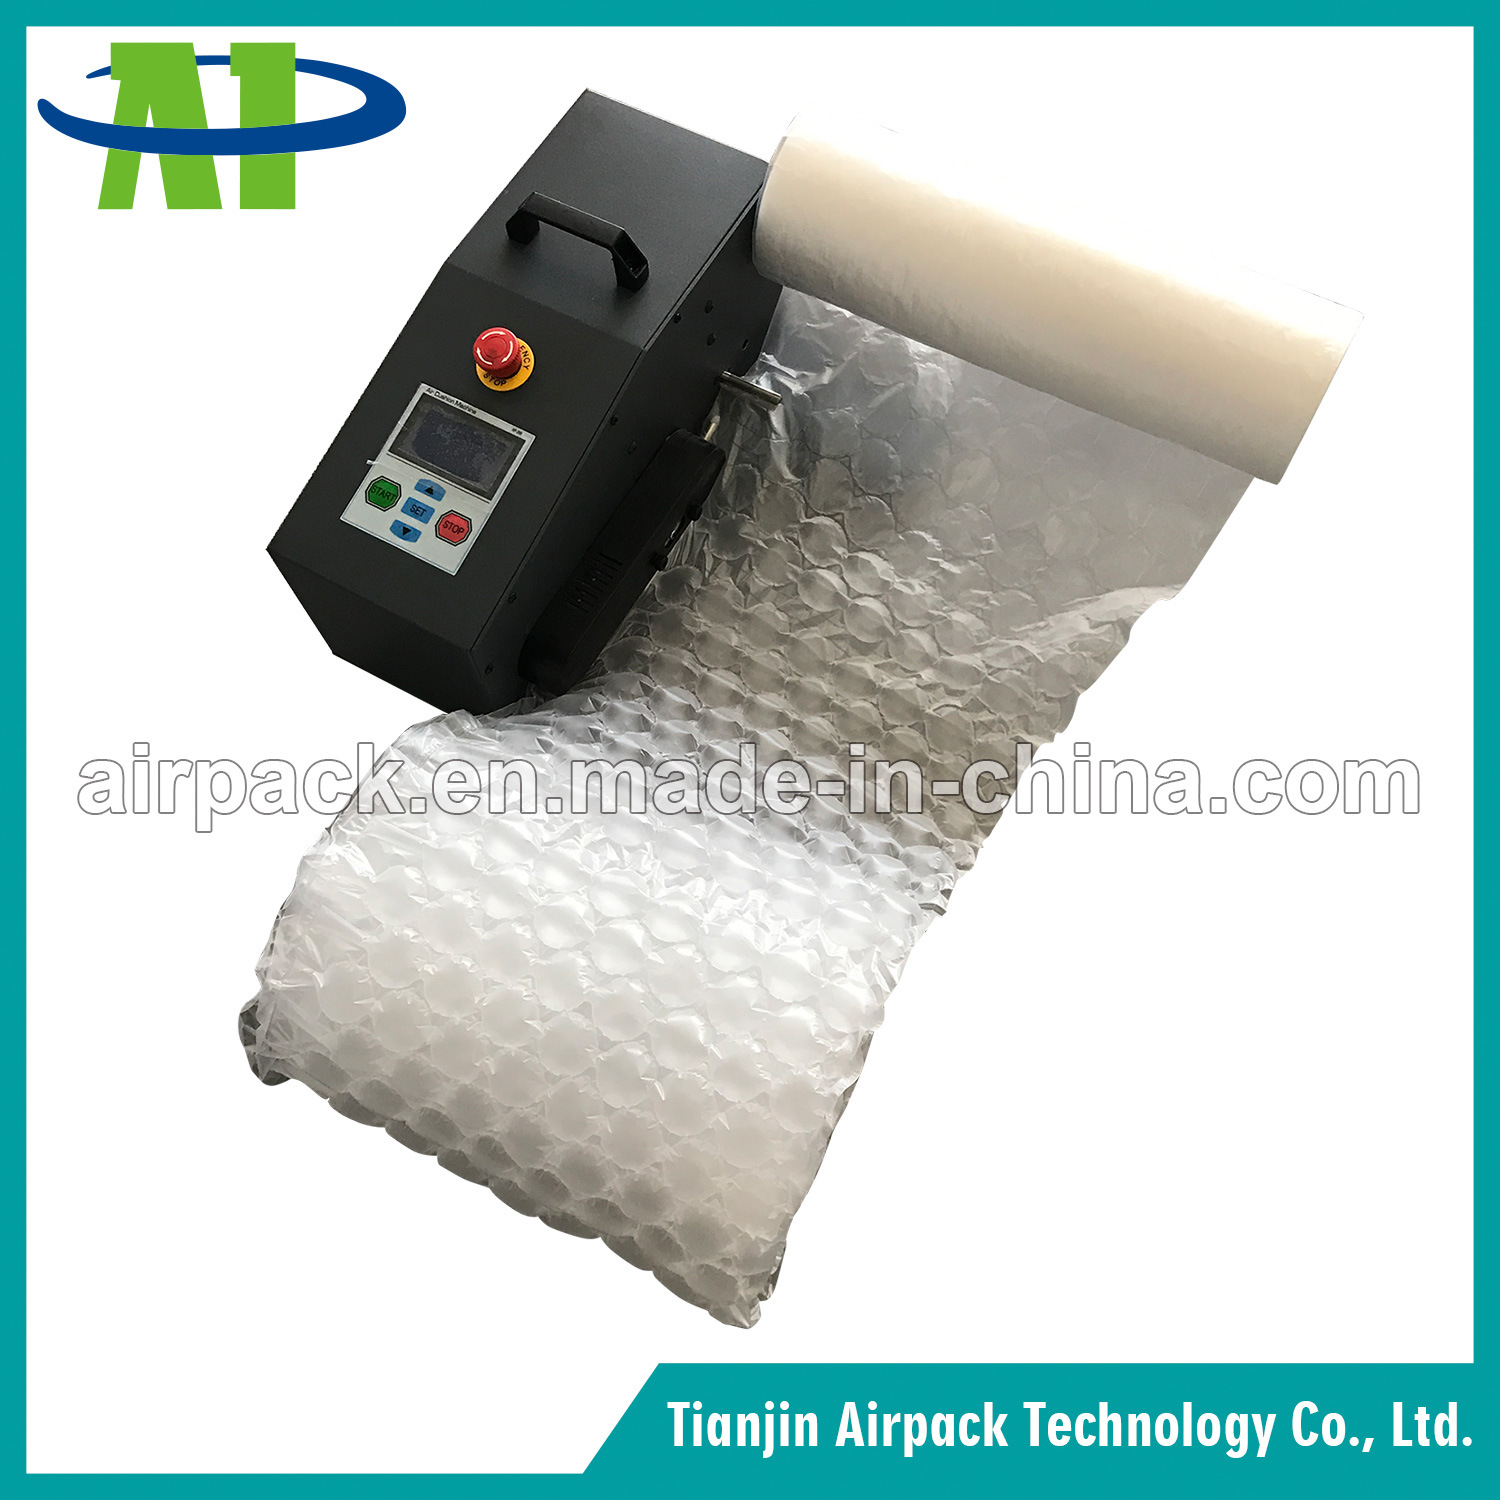 Protective Packaging Void Inflatable Cushion Package Air Bag Film